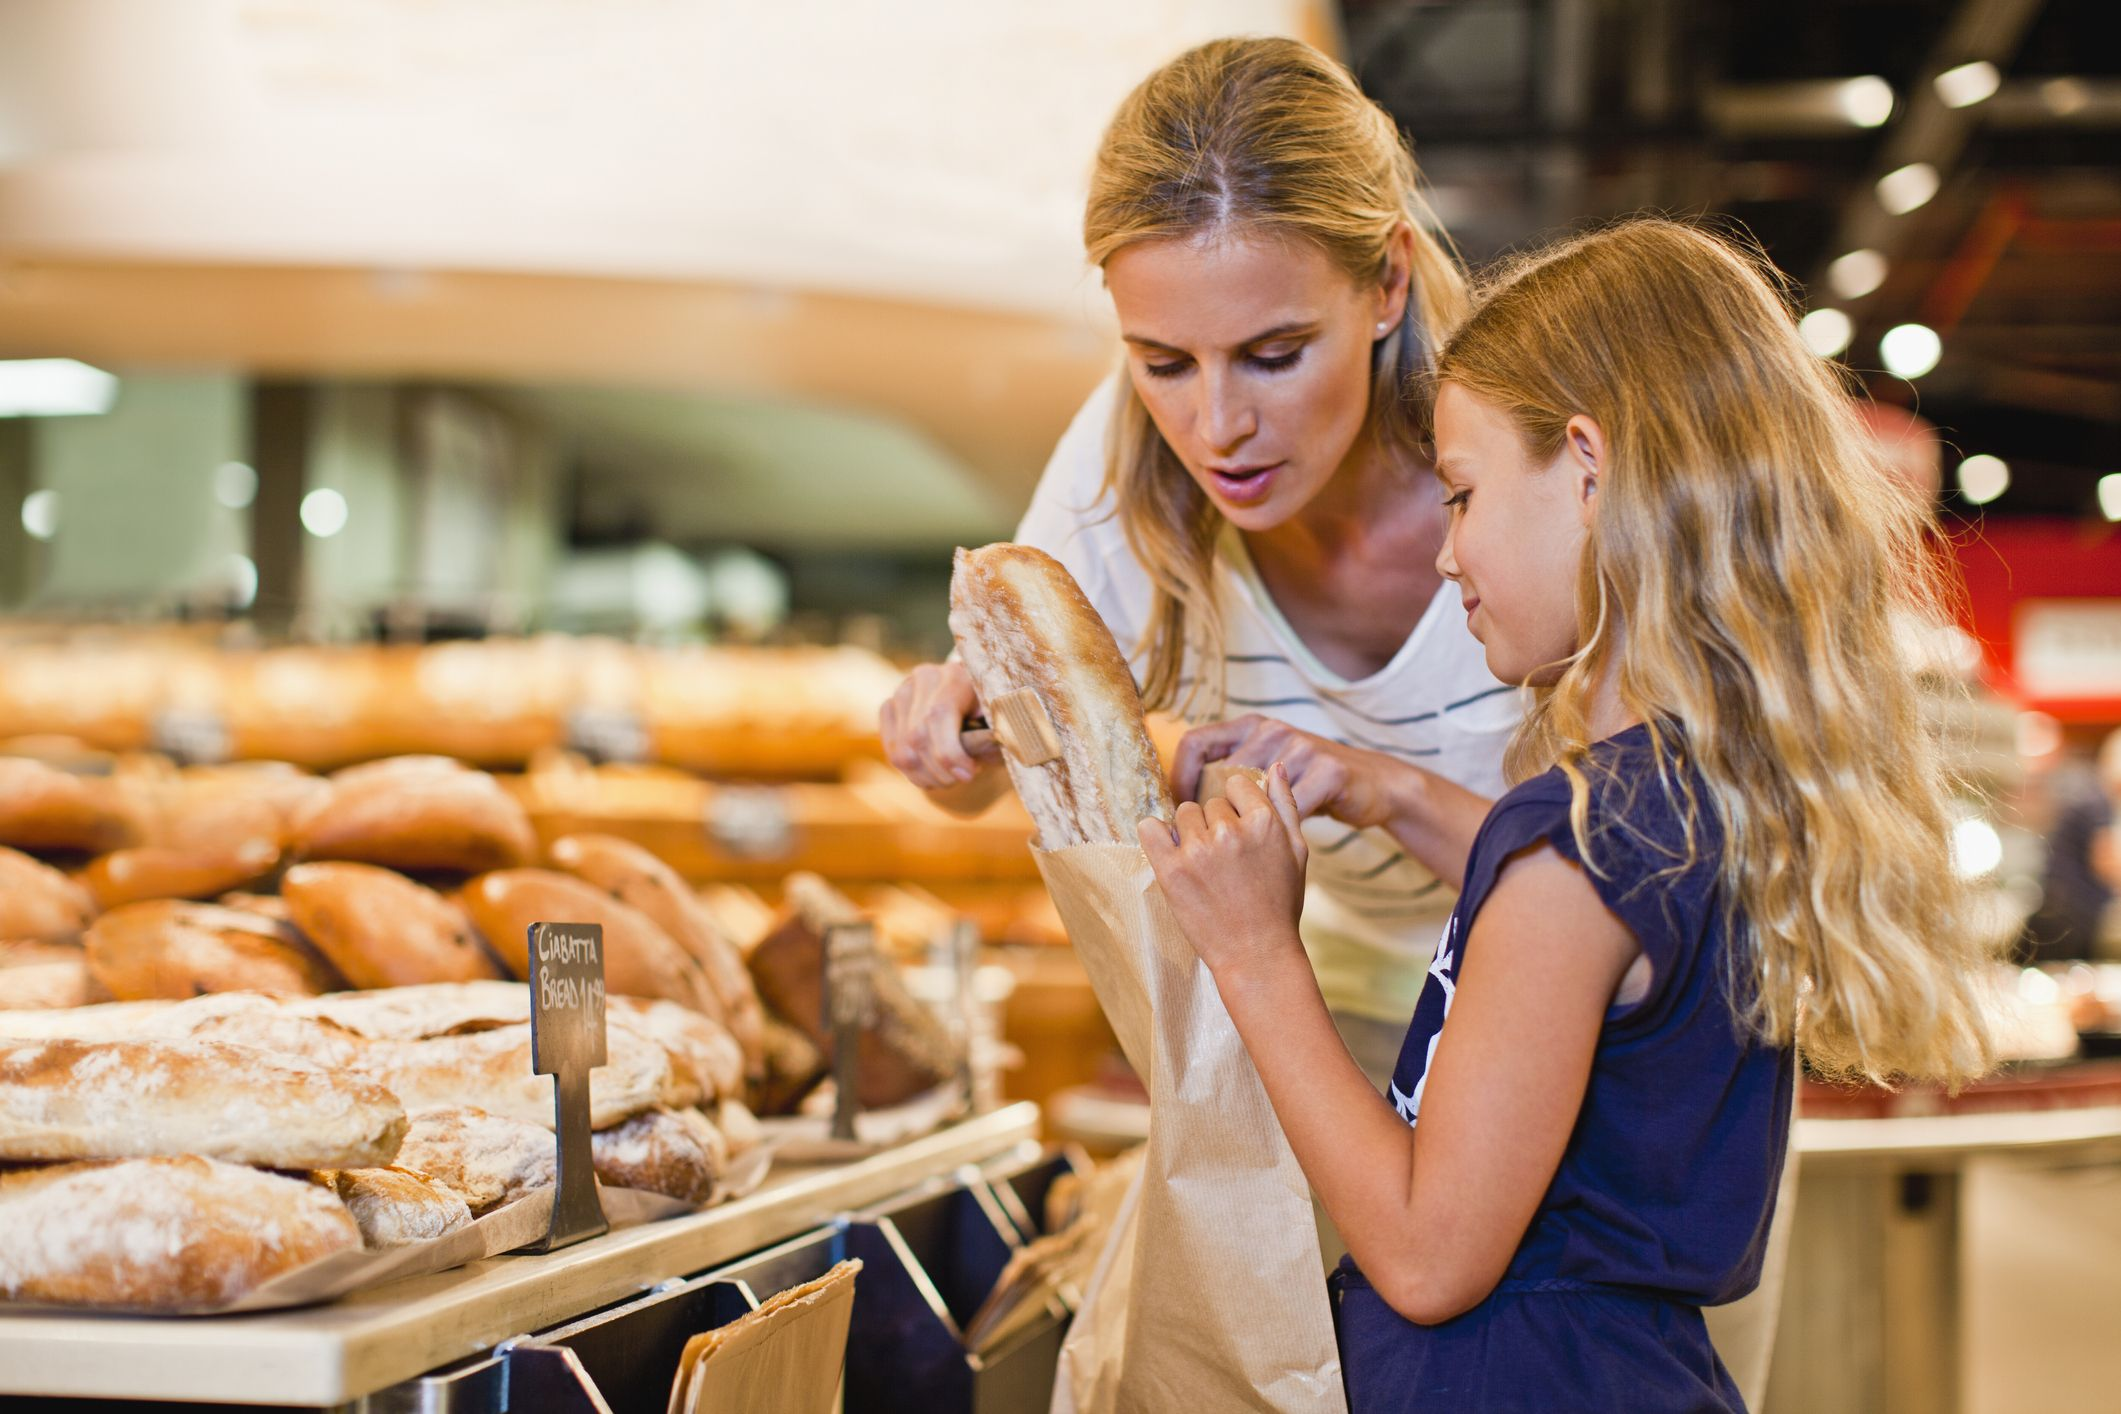 Go to the bakery section instead of the bread aisle.